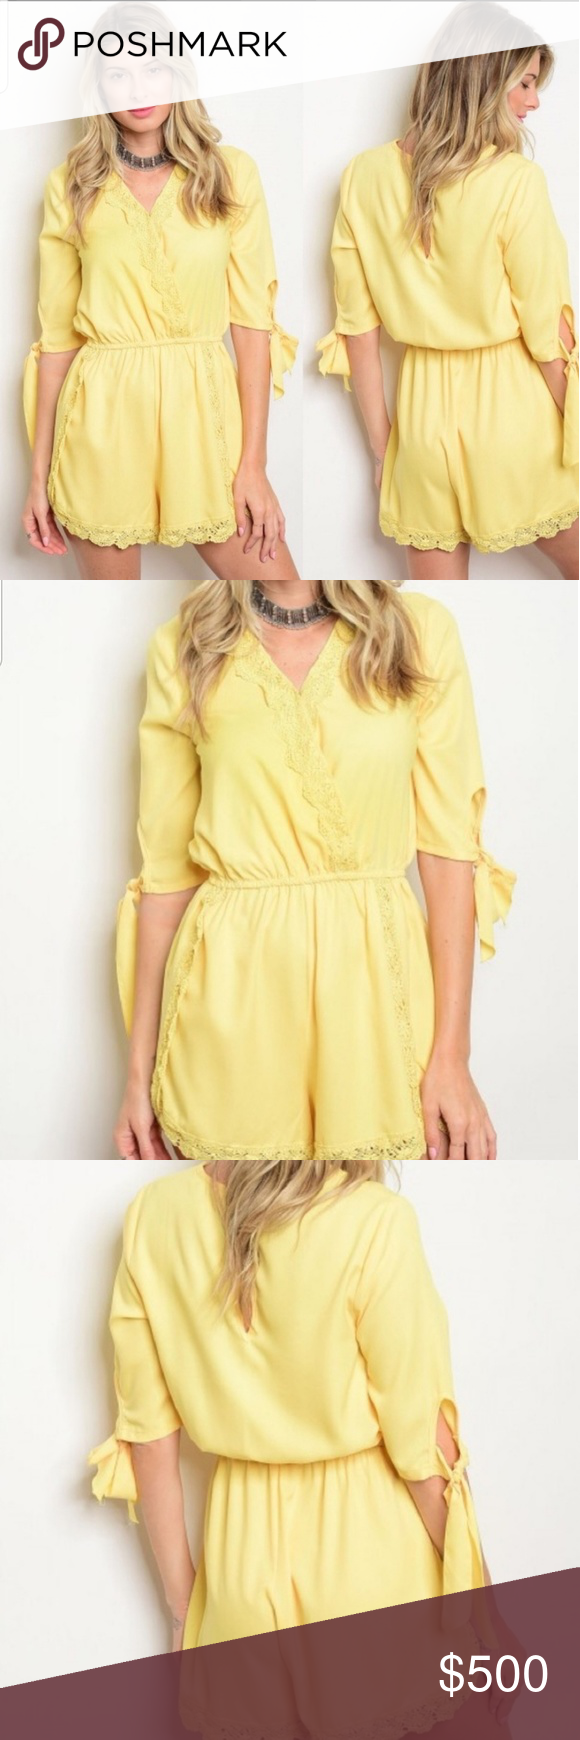 Yellow Romper Jumpsuit New Yellow Romper Jumpsuit Now  Available In small medium and large 100% polyester approx measurements for the small L:34 B 28 I.S: 4Like For Price Drop! Pants Jumpsuits & Rompers #jumpsuitromper